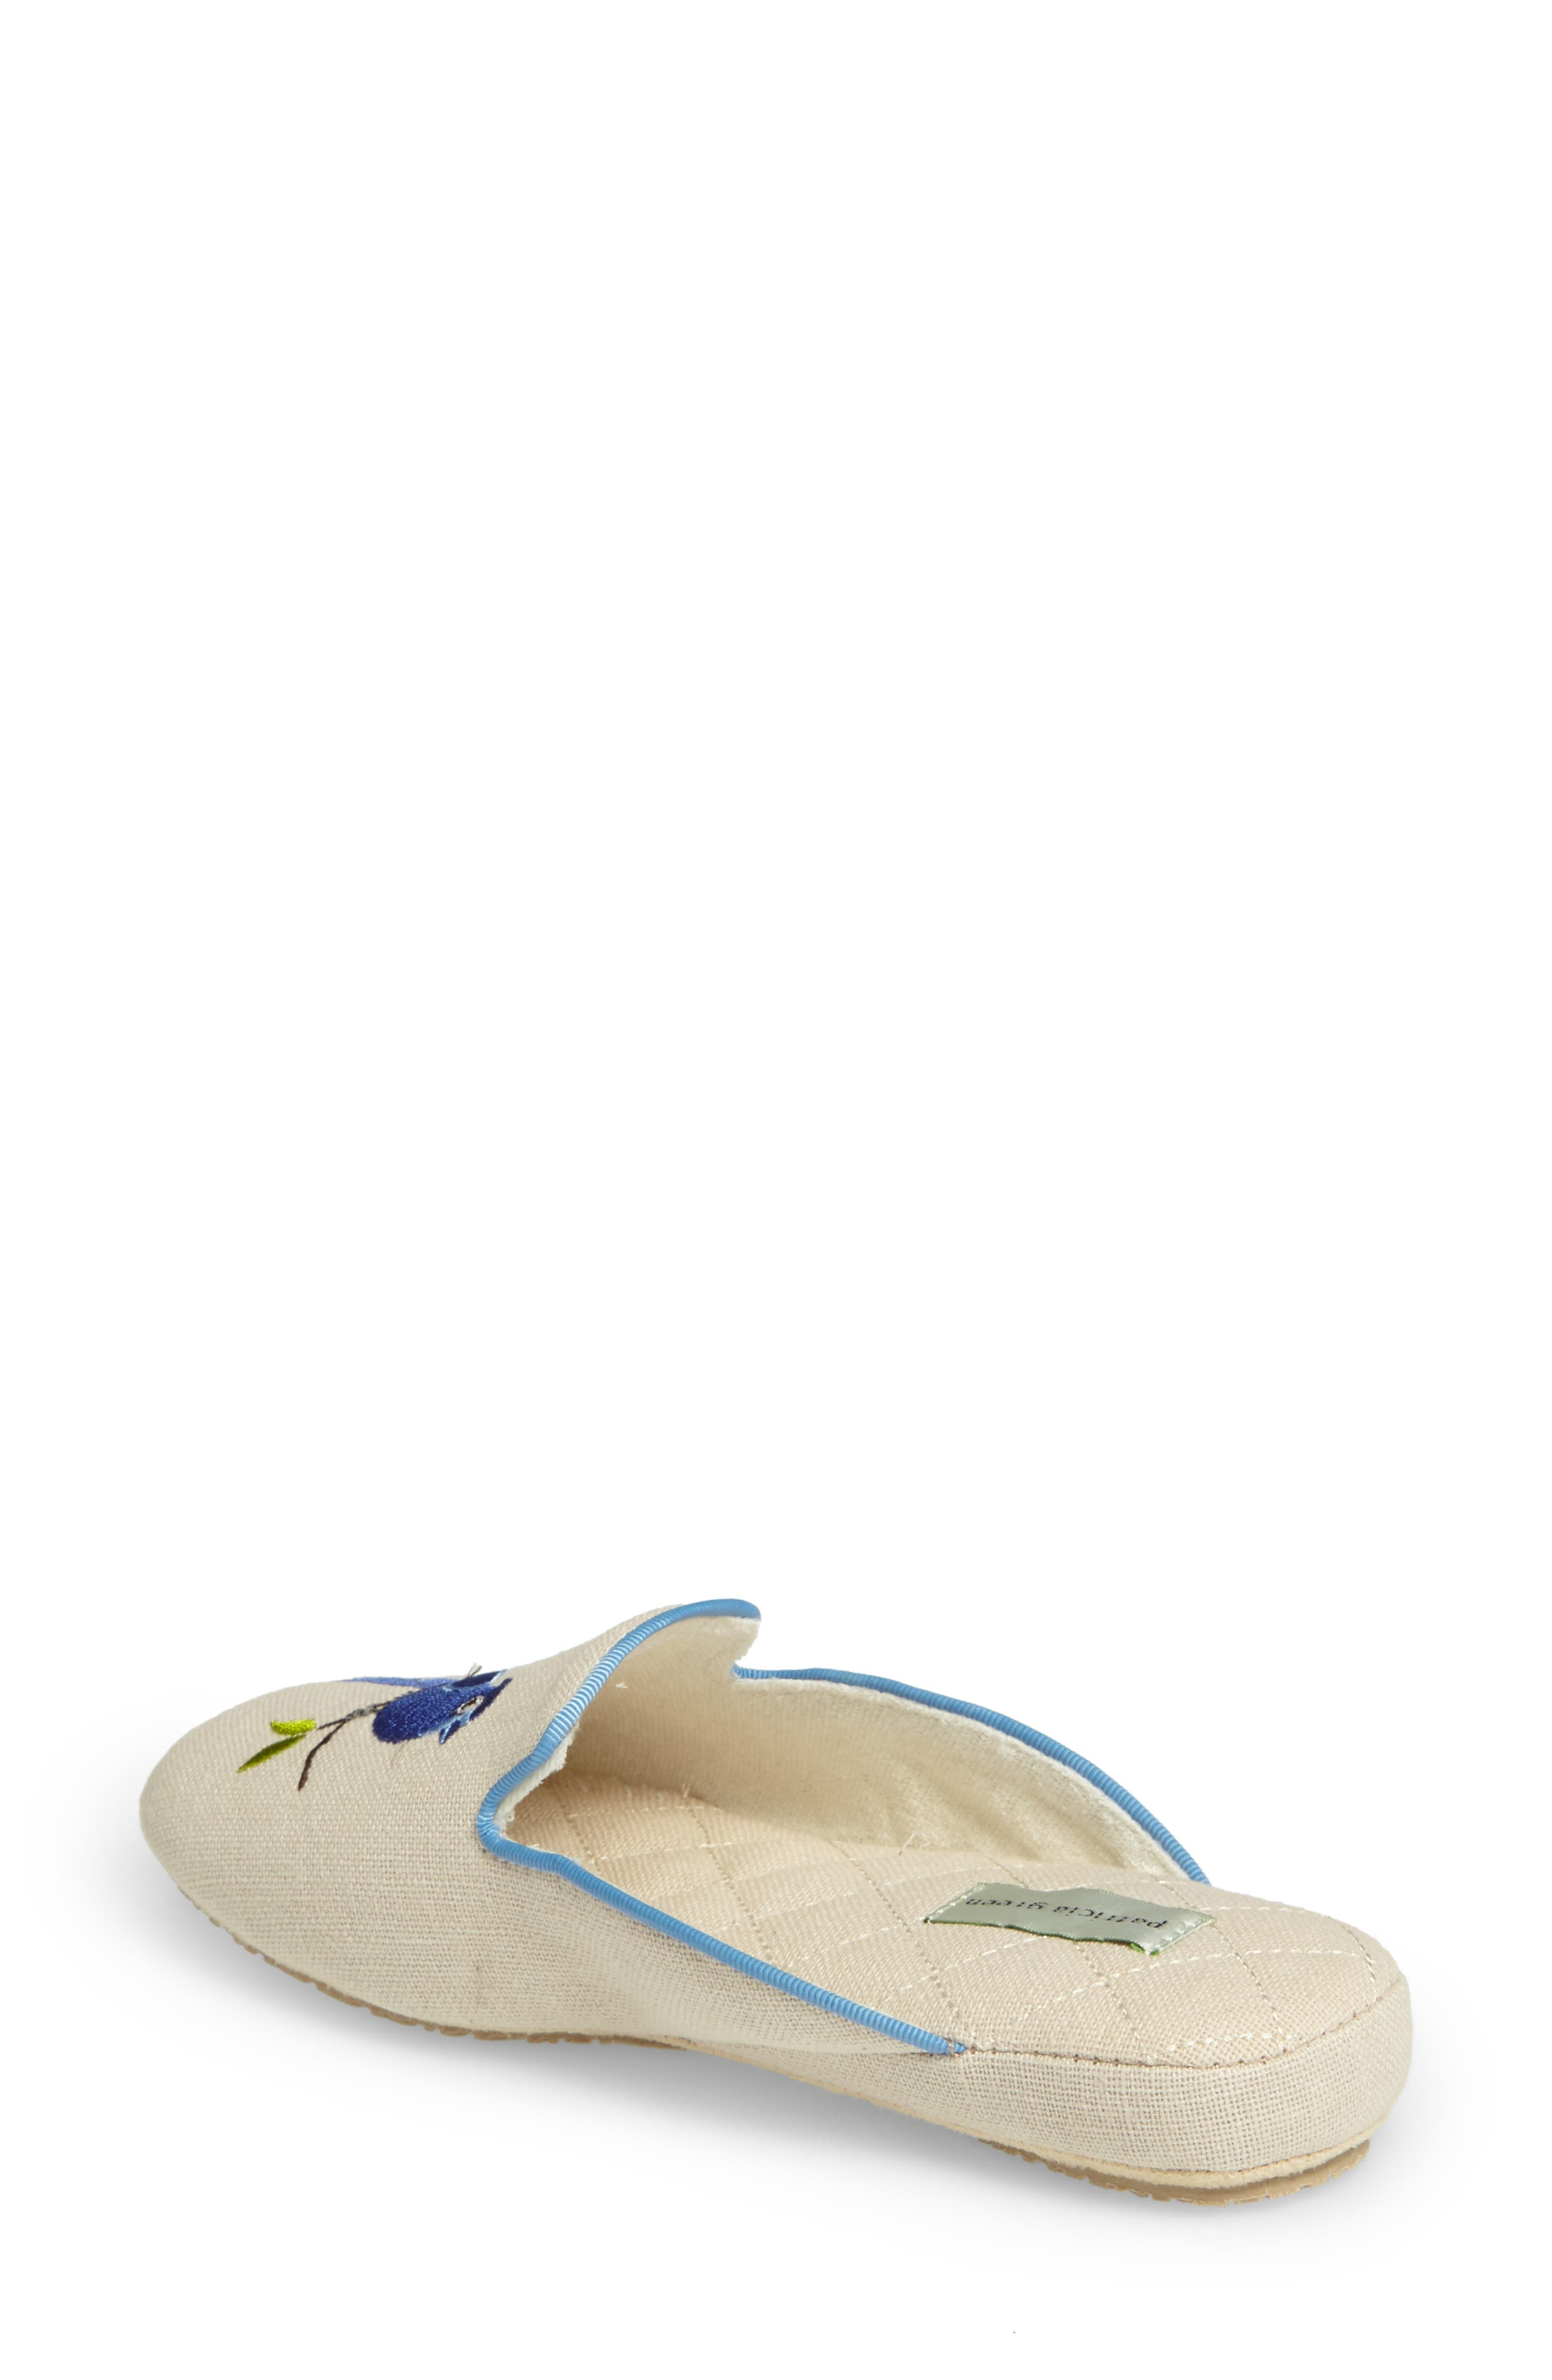 Bluebird Embroidered Slipper,                             Alternate thumbnail 2, color,                             255